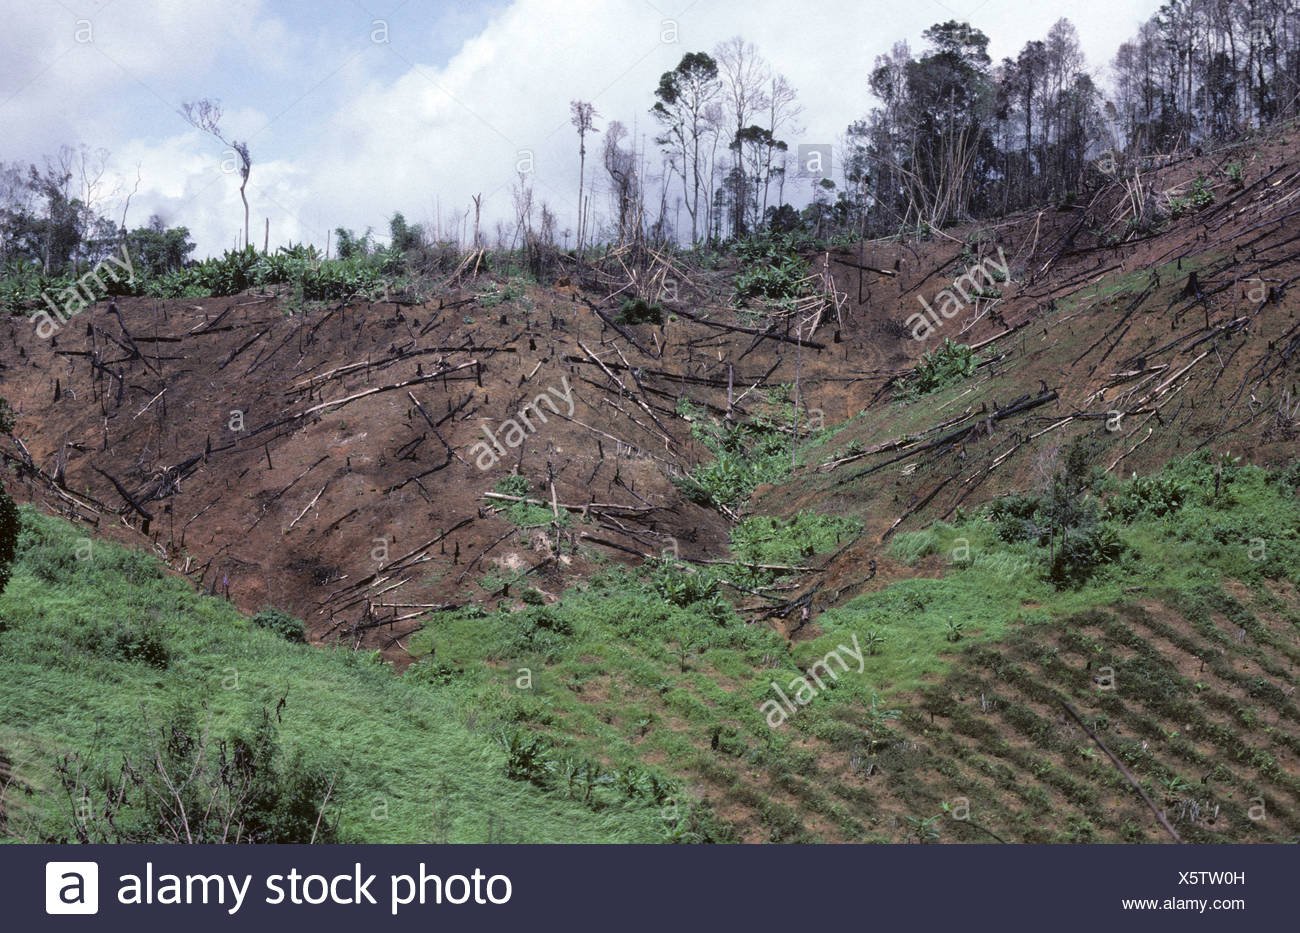 Rainforest deforestation slash and burn in Thailand showing cropping on lower slopes - Stock Image